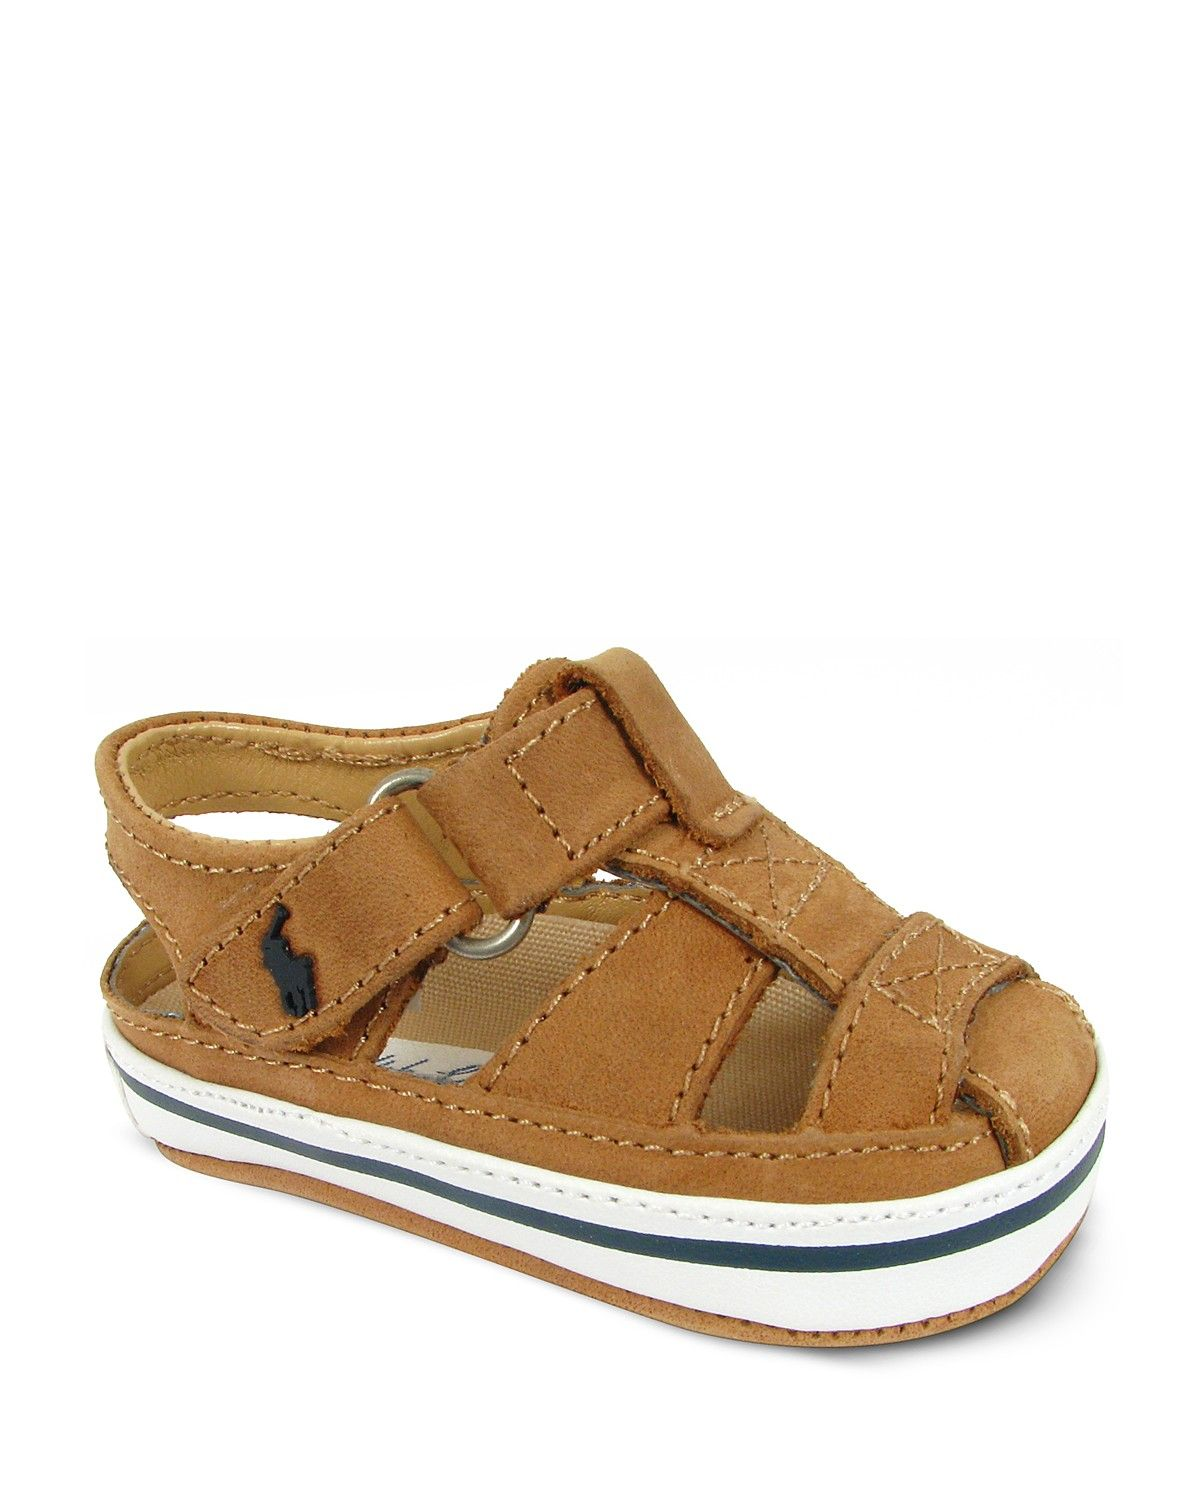 eb153c7623d8d Ralph Lauren Childrenswear Infant Boys  Sander Fisherman Tan Leather Sandals  - Sizes 1-4 Infant